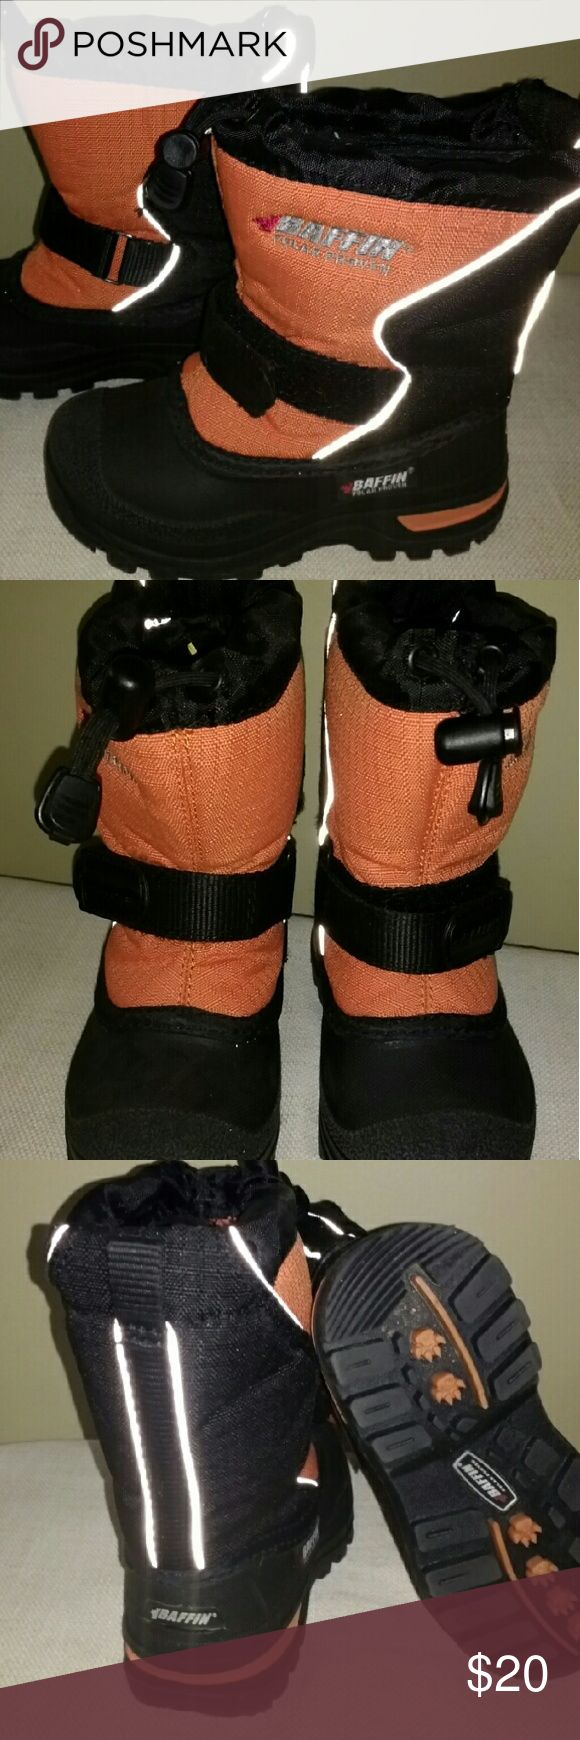 Baffin Mustang Child Snow Boot Insulated; now worn but a couple of times; like new or excellent condition! Baffin Shoes Boots